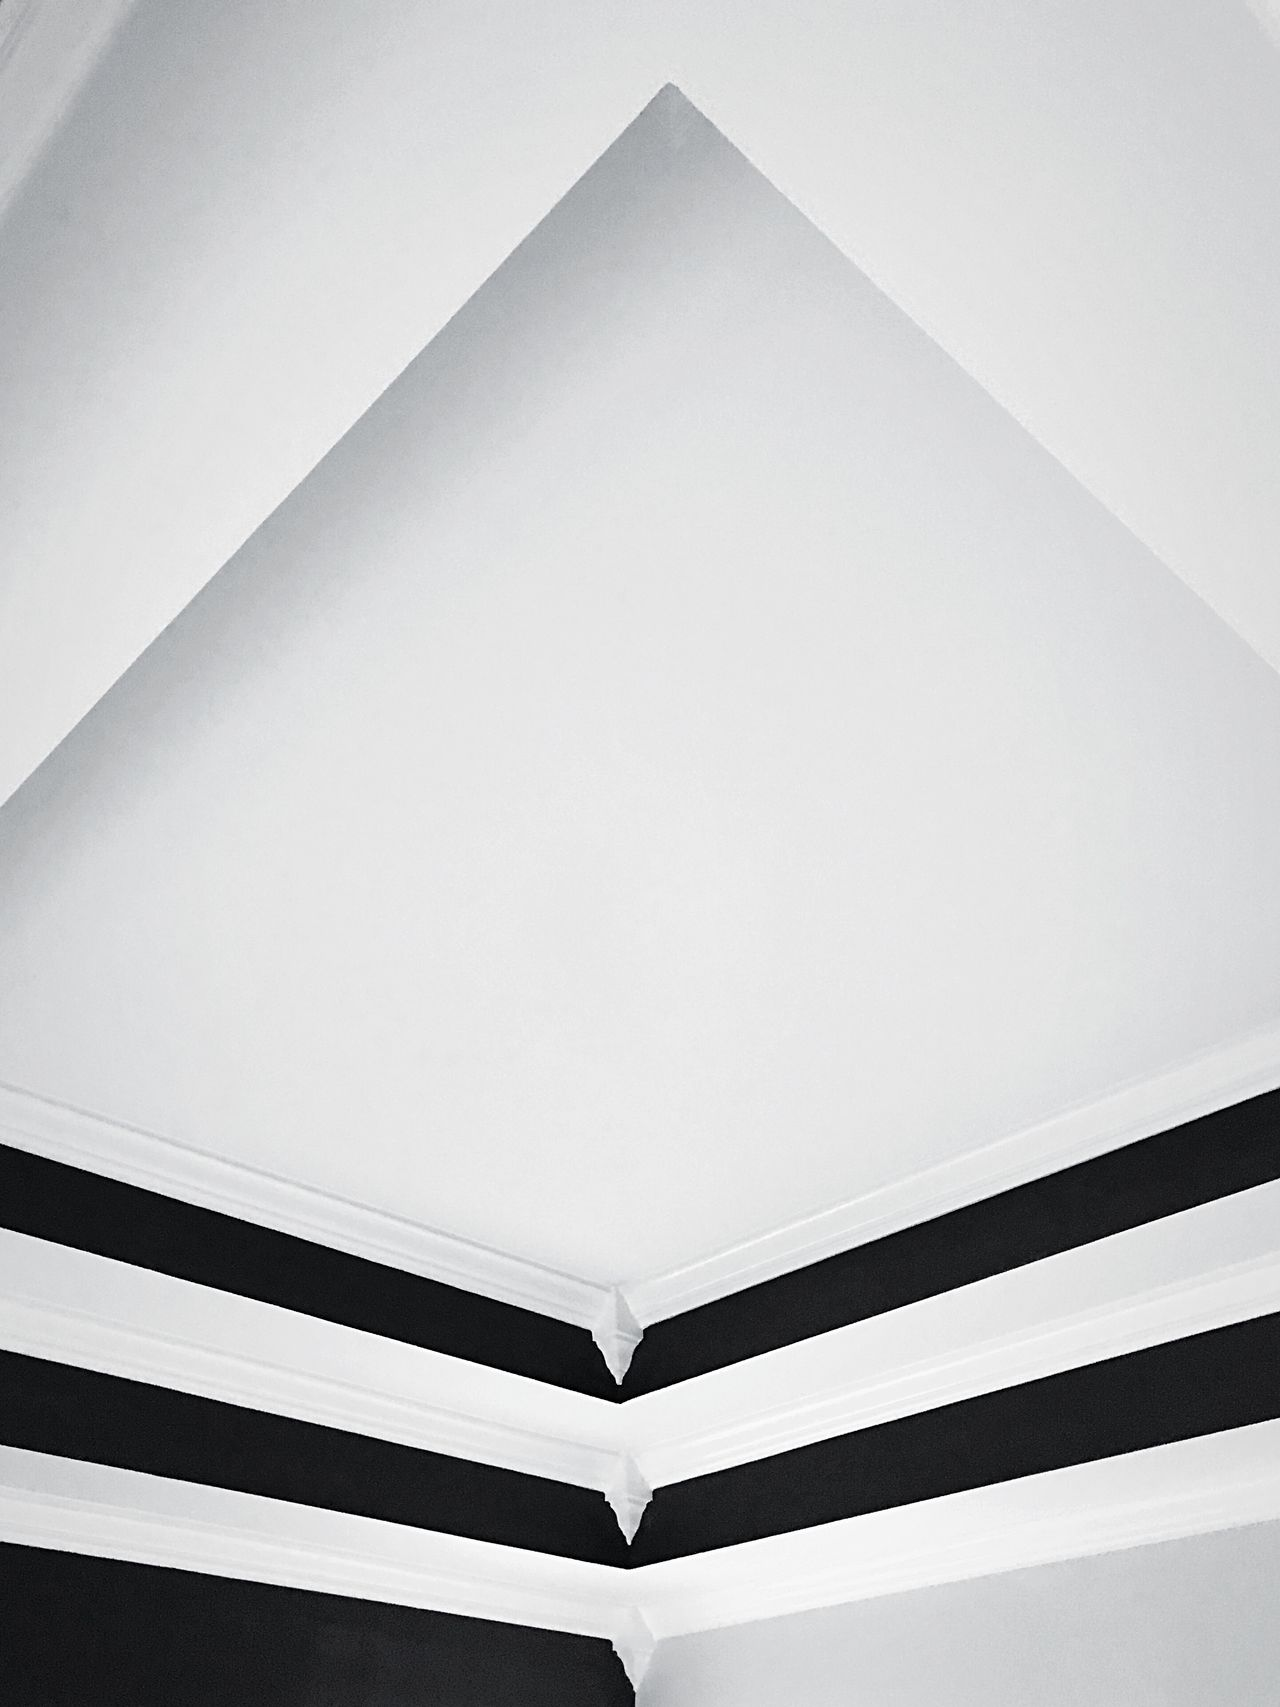 EyeEm Selects White Color Pattern No People Architecture Indoors  Built Structure White Background